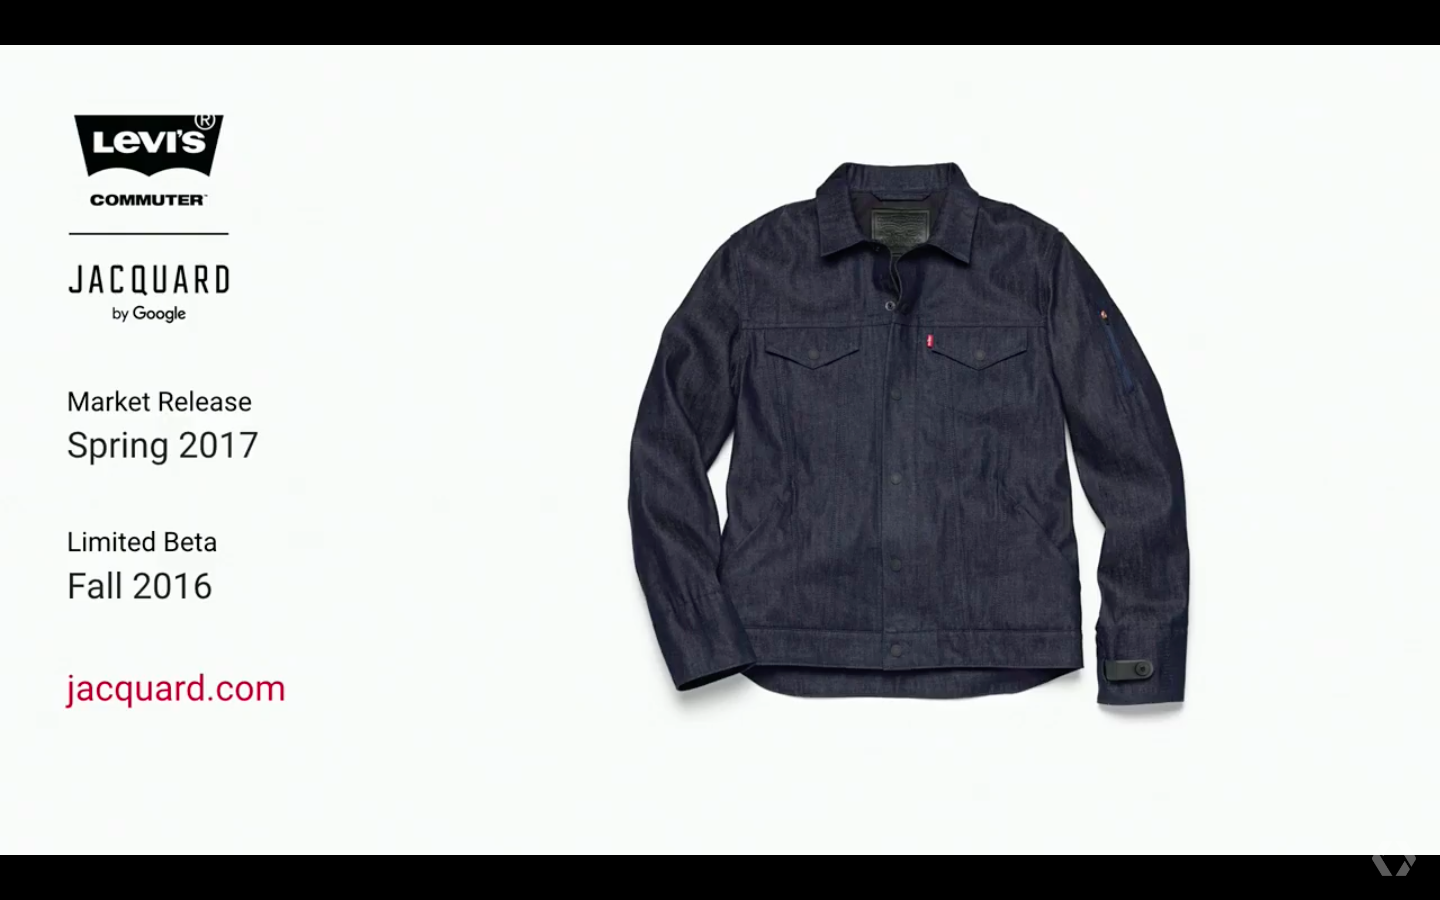 Google and Levis are releasing their smart jacket early next year